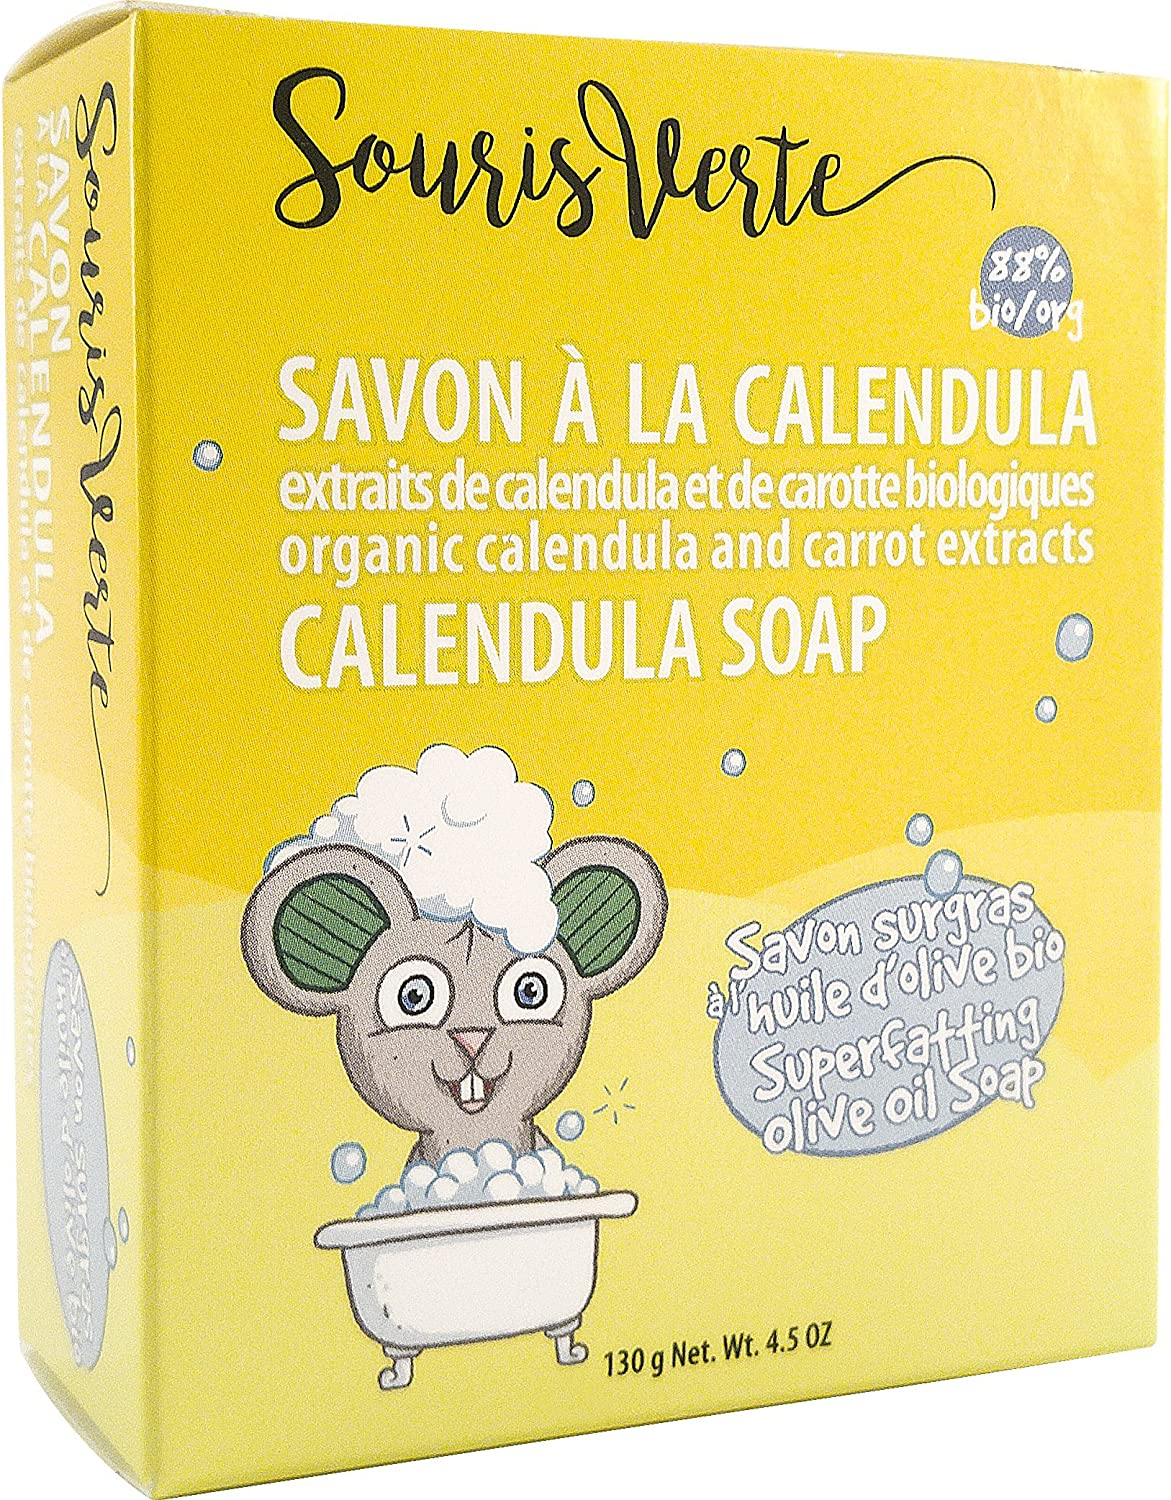 Souris Verte Natural Organic Baby Soap Bar, 130g Pro-Merit CA 942